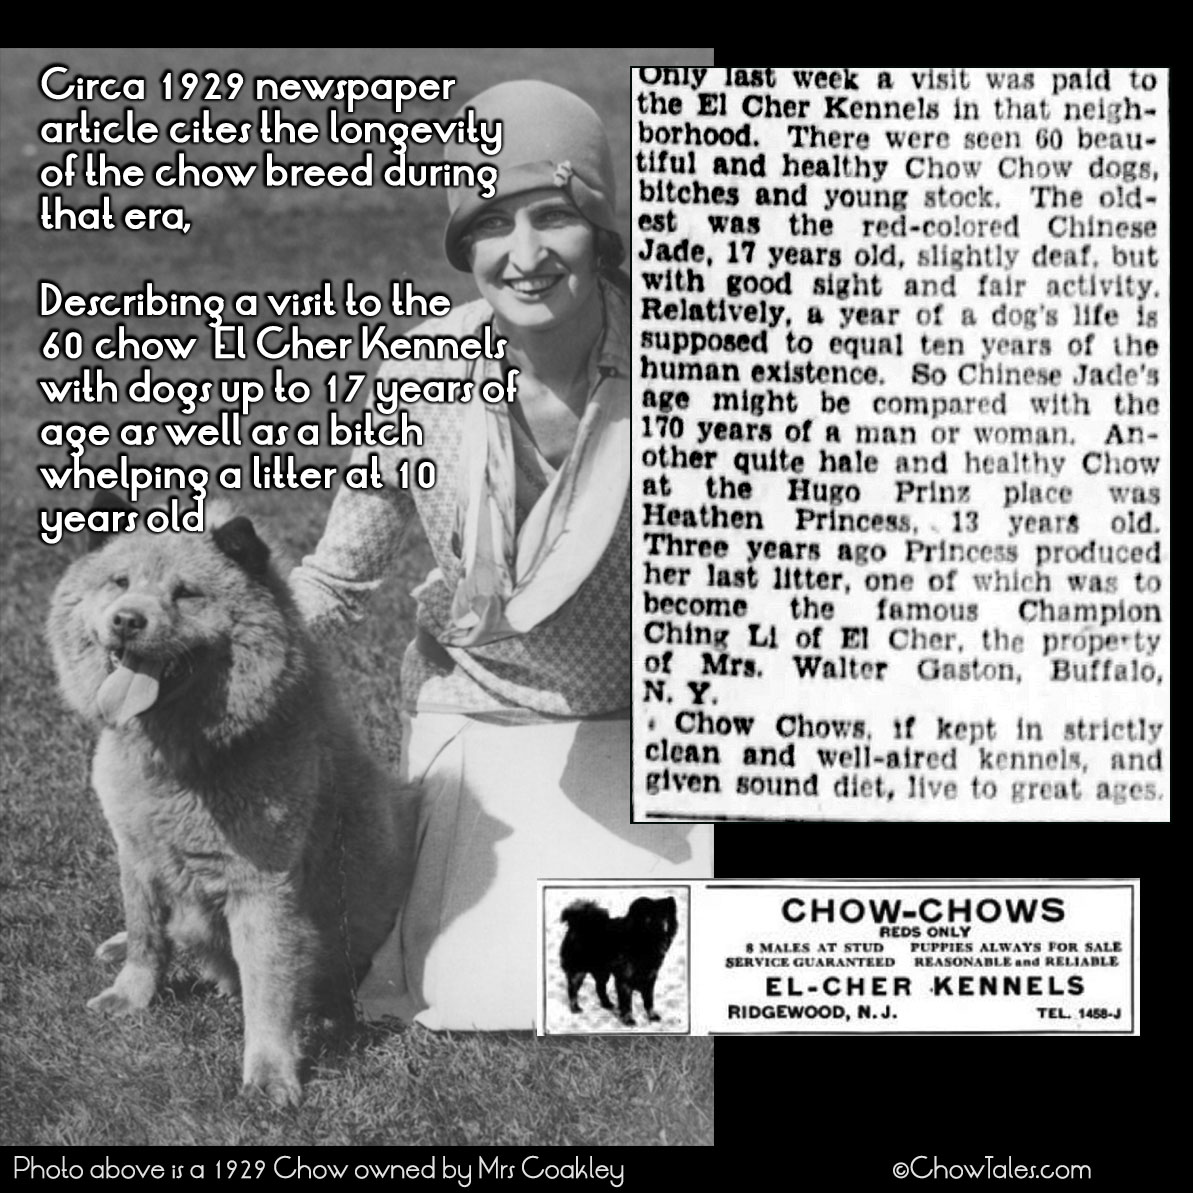 1929 Old chows AT El Cher Kennels